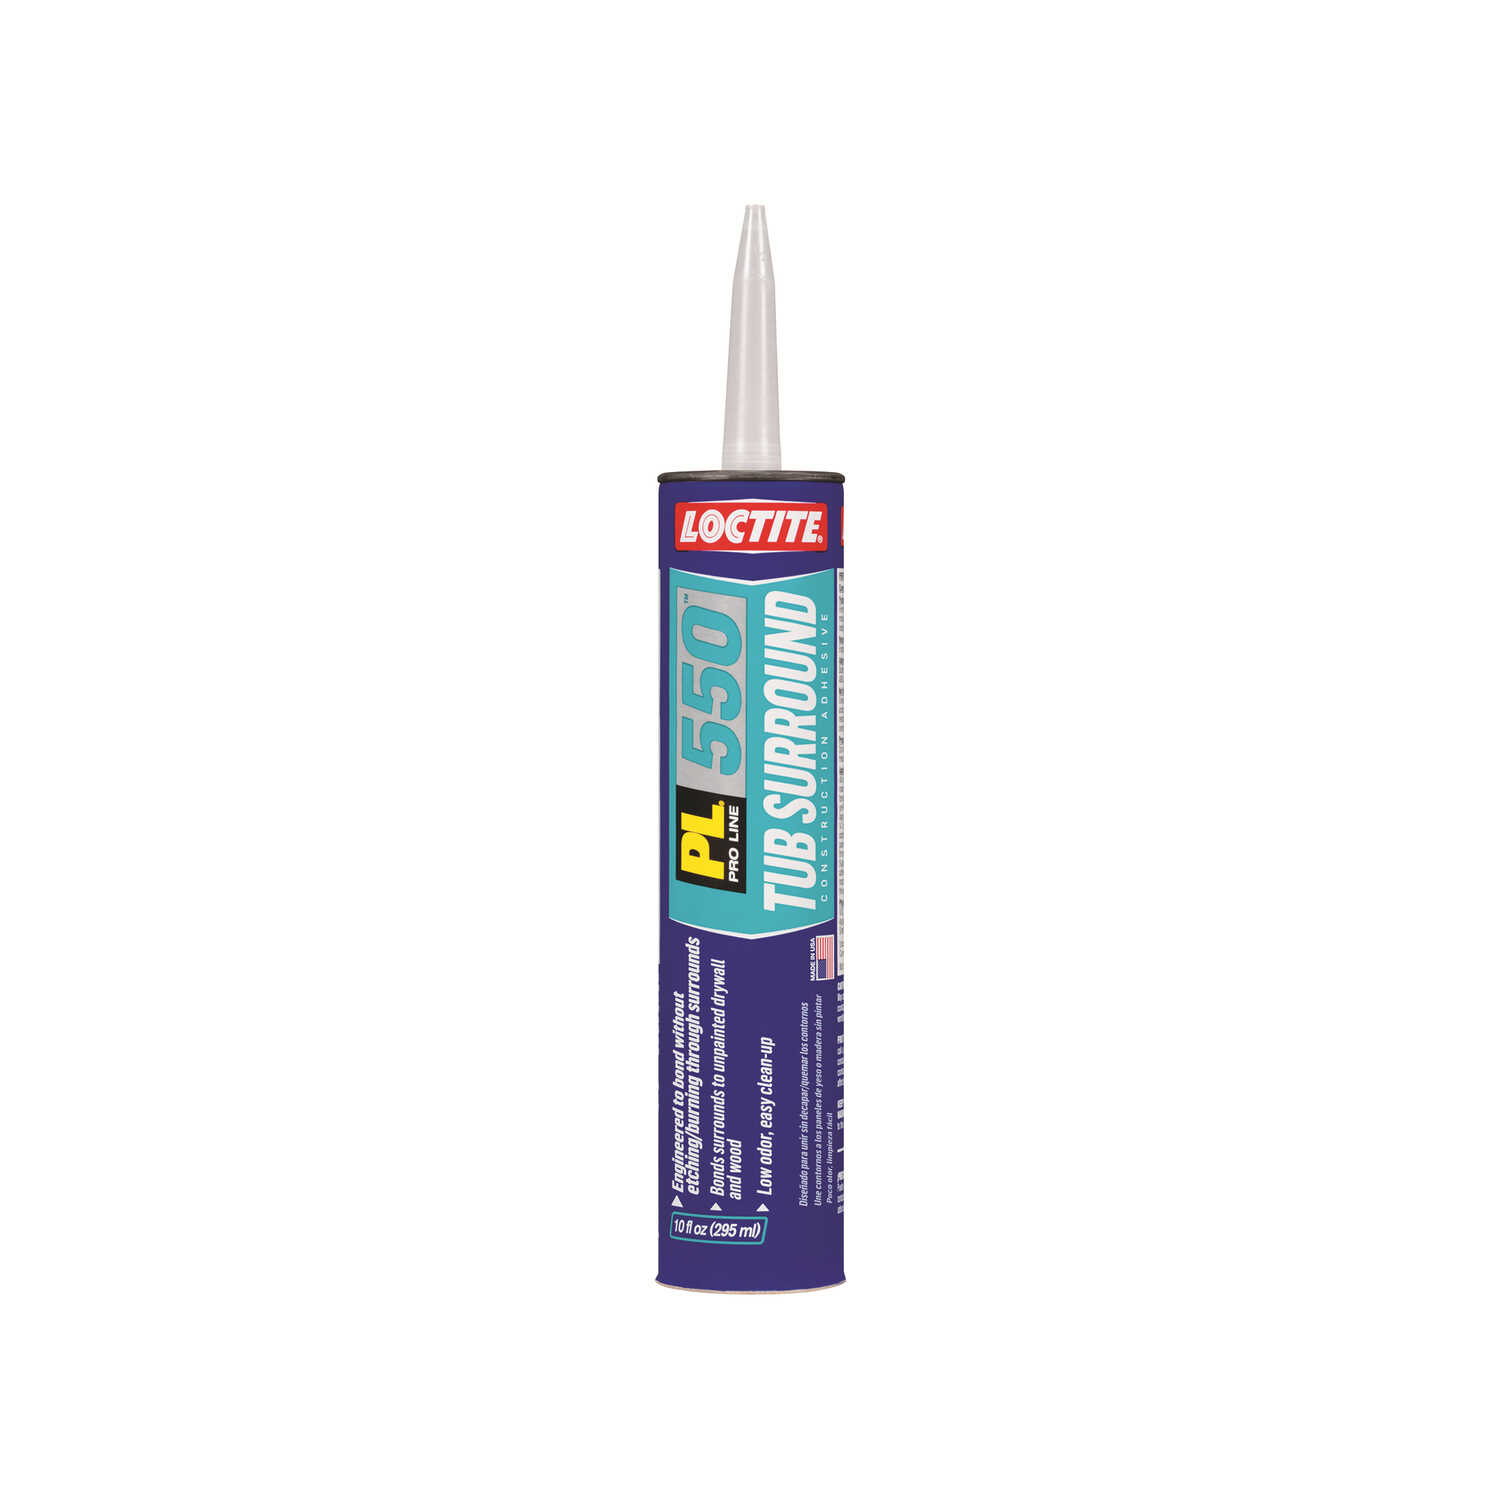 Loctite  PL 550 Tub Surround  Paste  Construction Adhesive  10 oz.